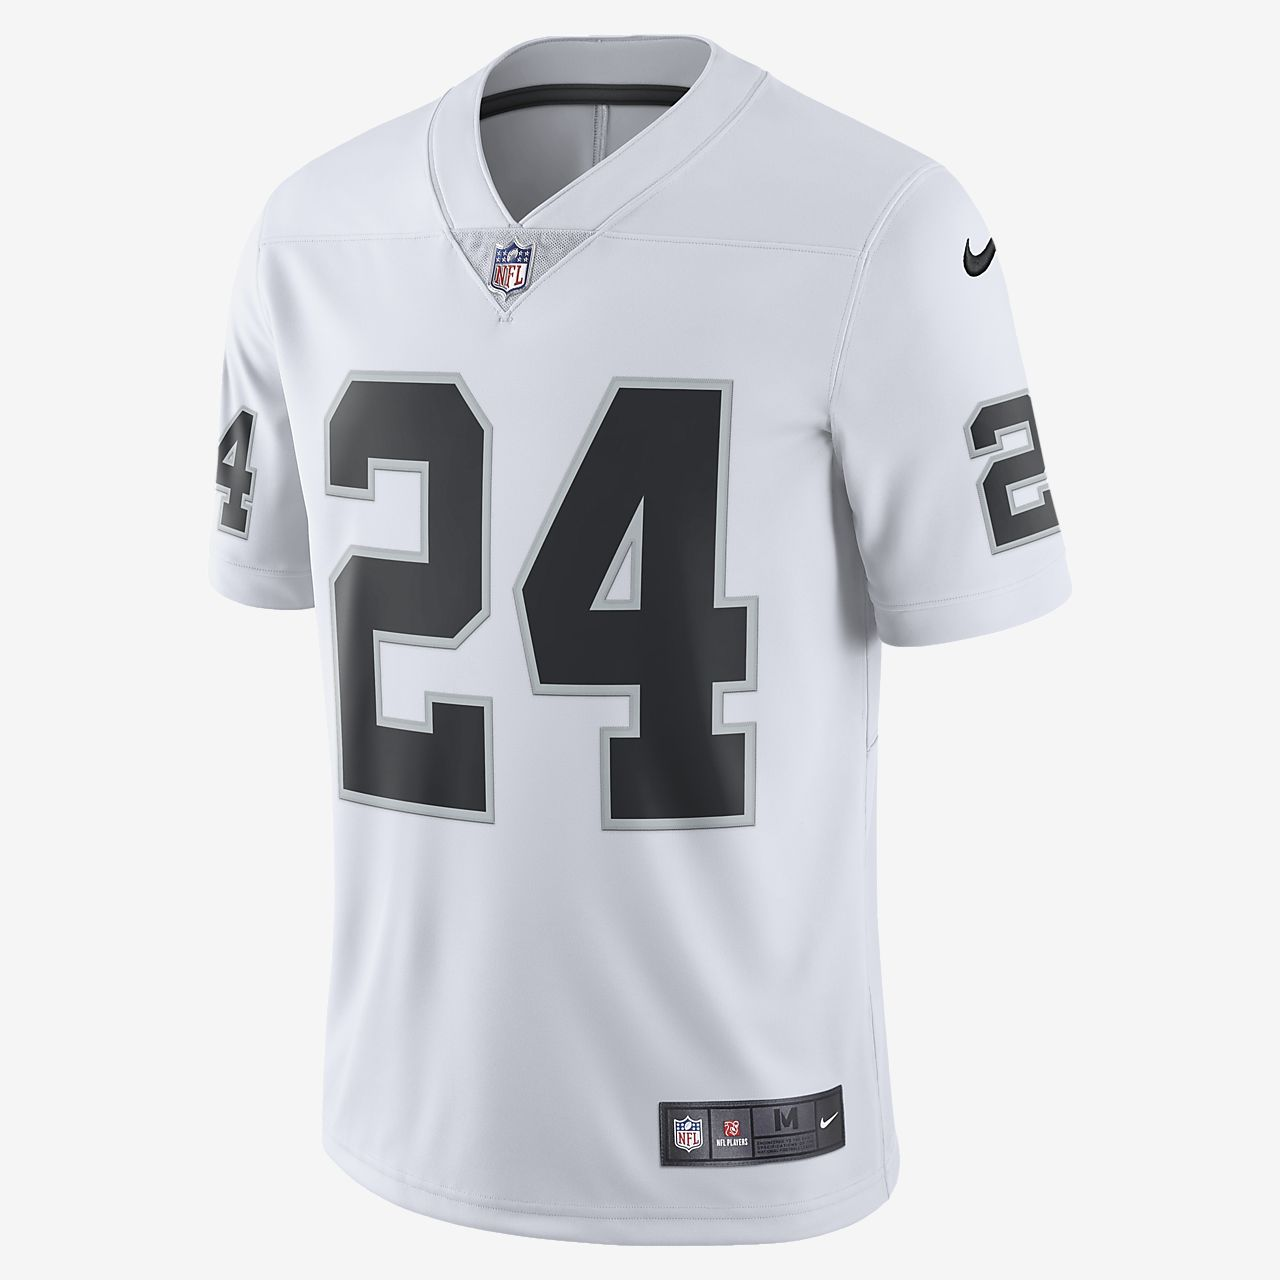 1410740db93 NFL Oakland Raiders Limited (Marshawn Lynch) Men s Football Jersey ...